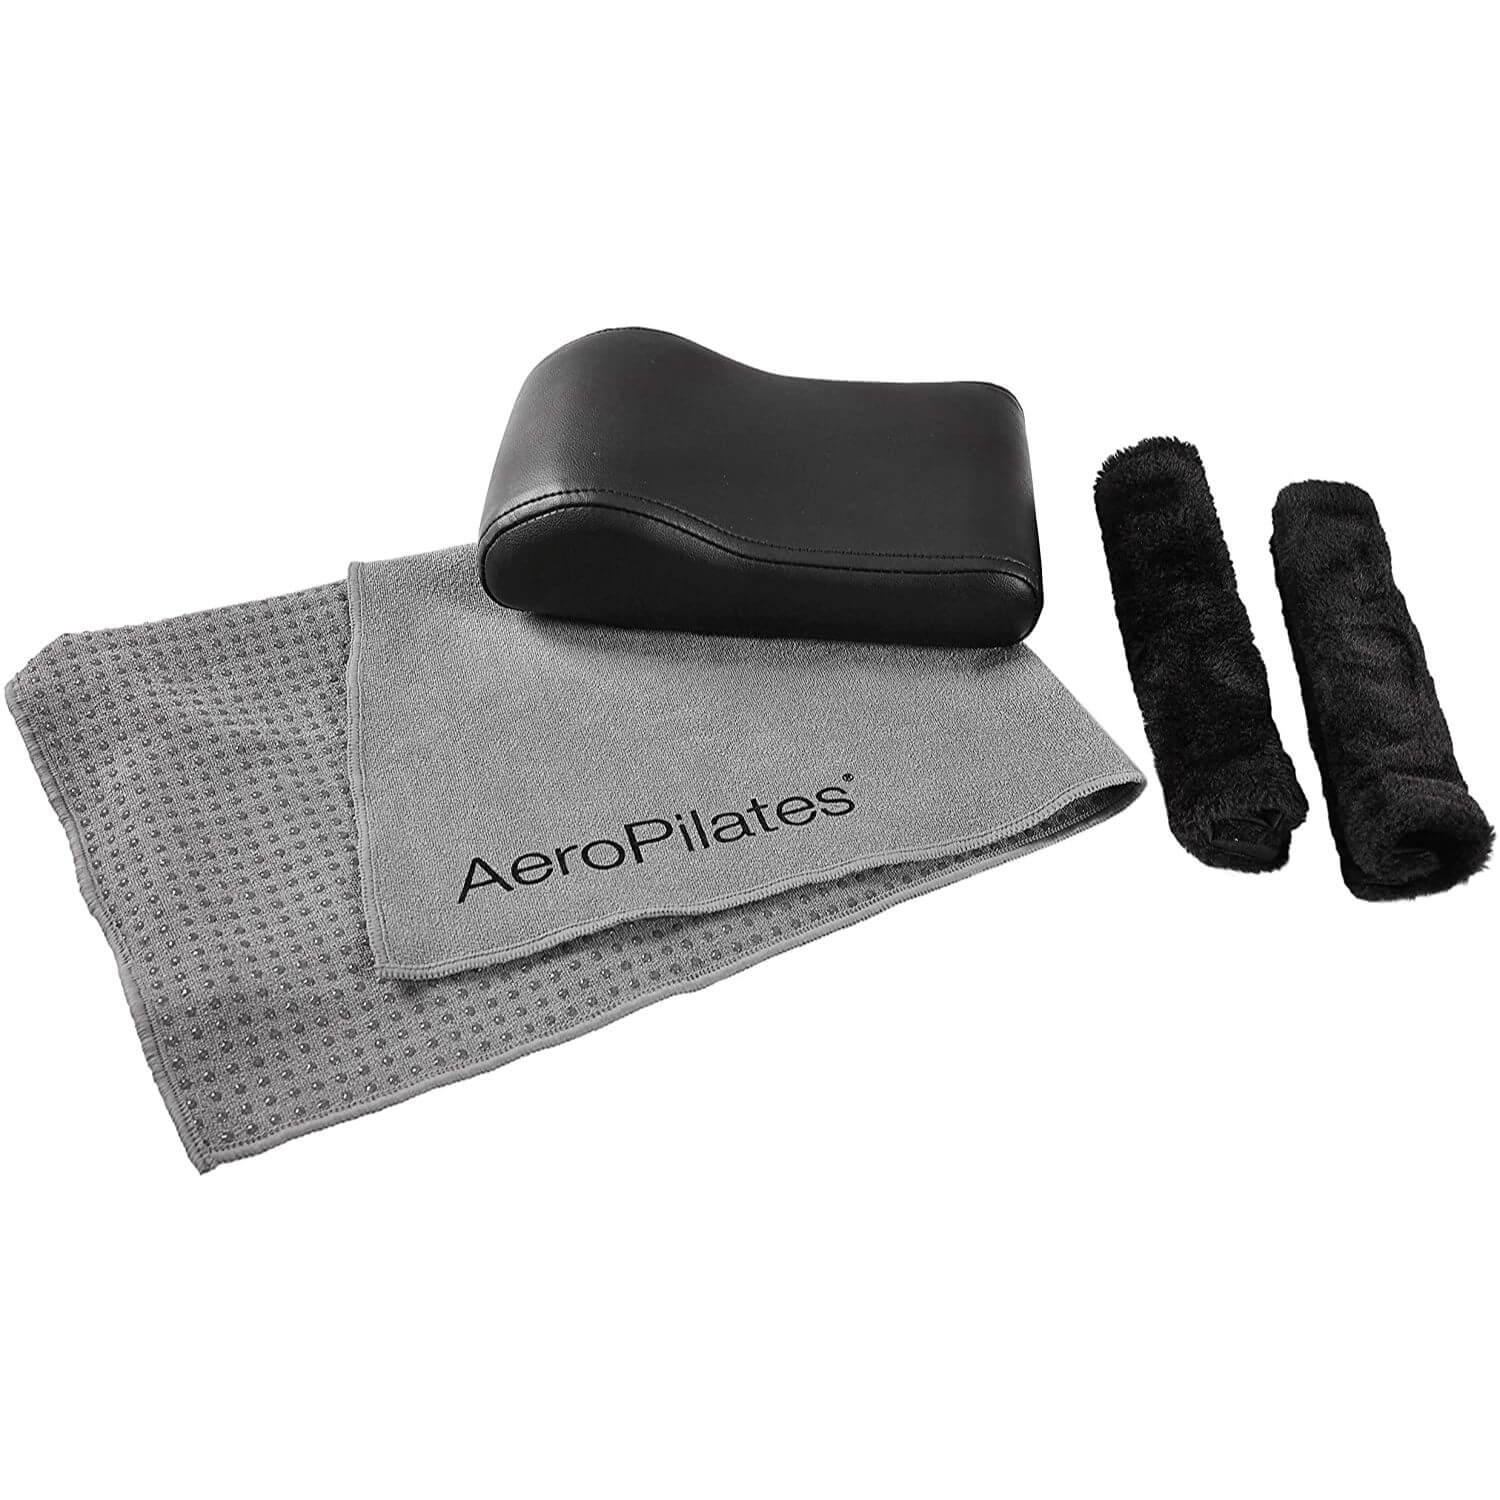 Stamina AeroPilates Comfort Kit with Head Pillow, Non-Slip Towel, and Hand Grips - Pilates Reformers Plus